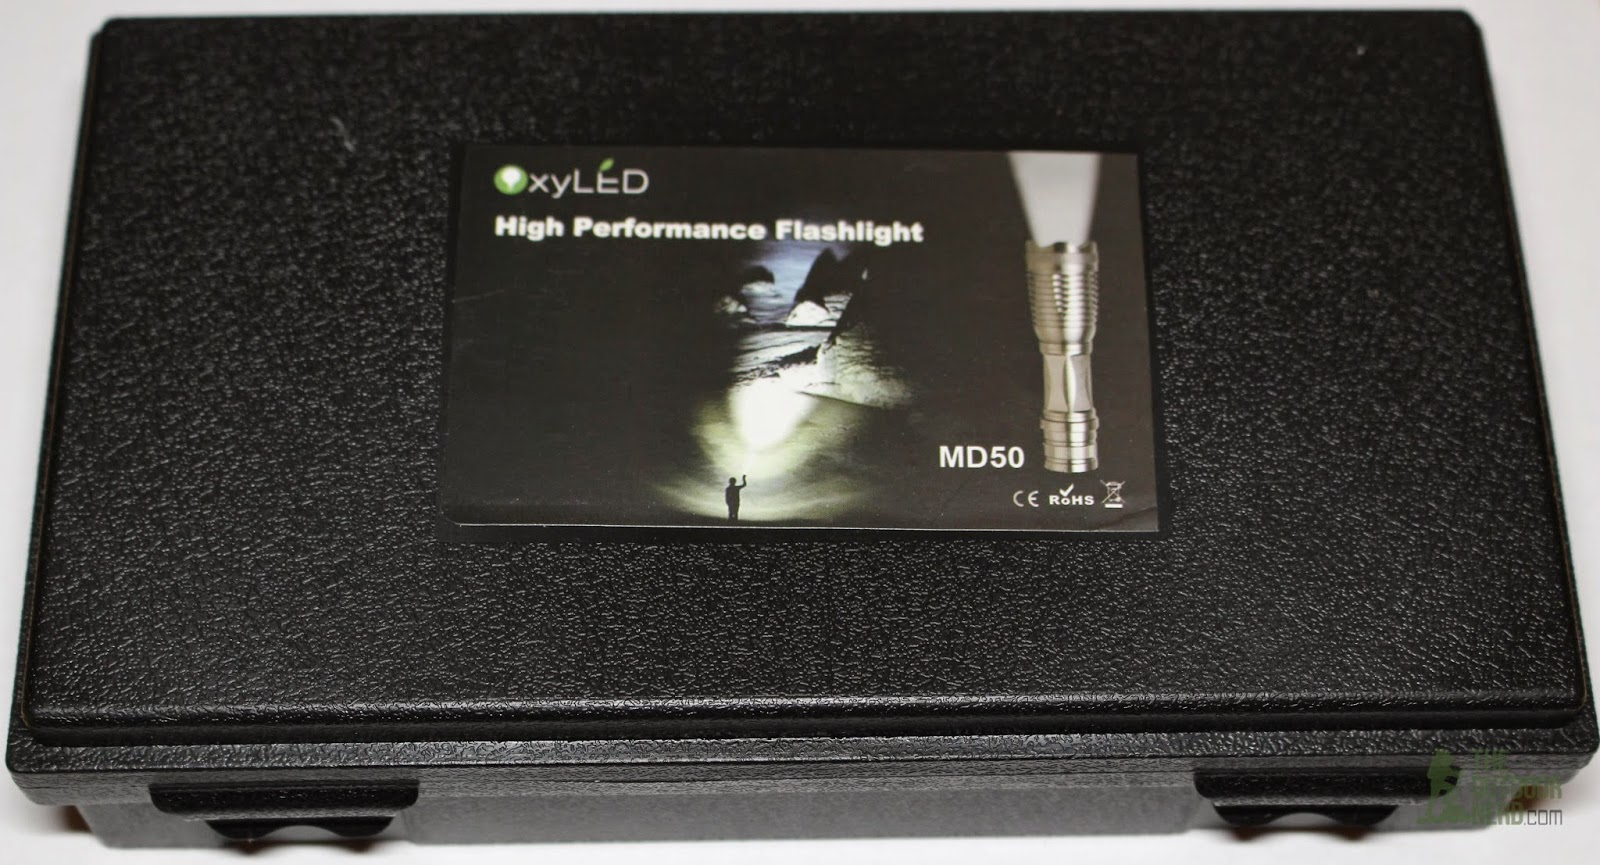 OxyLED MD50 Flashlight Kit - In Box 1